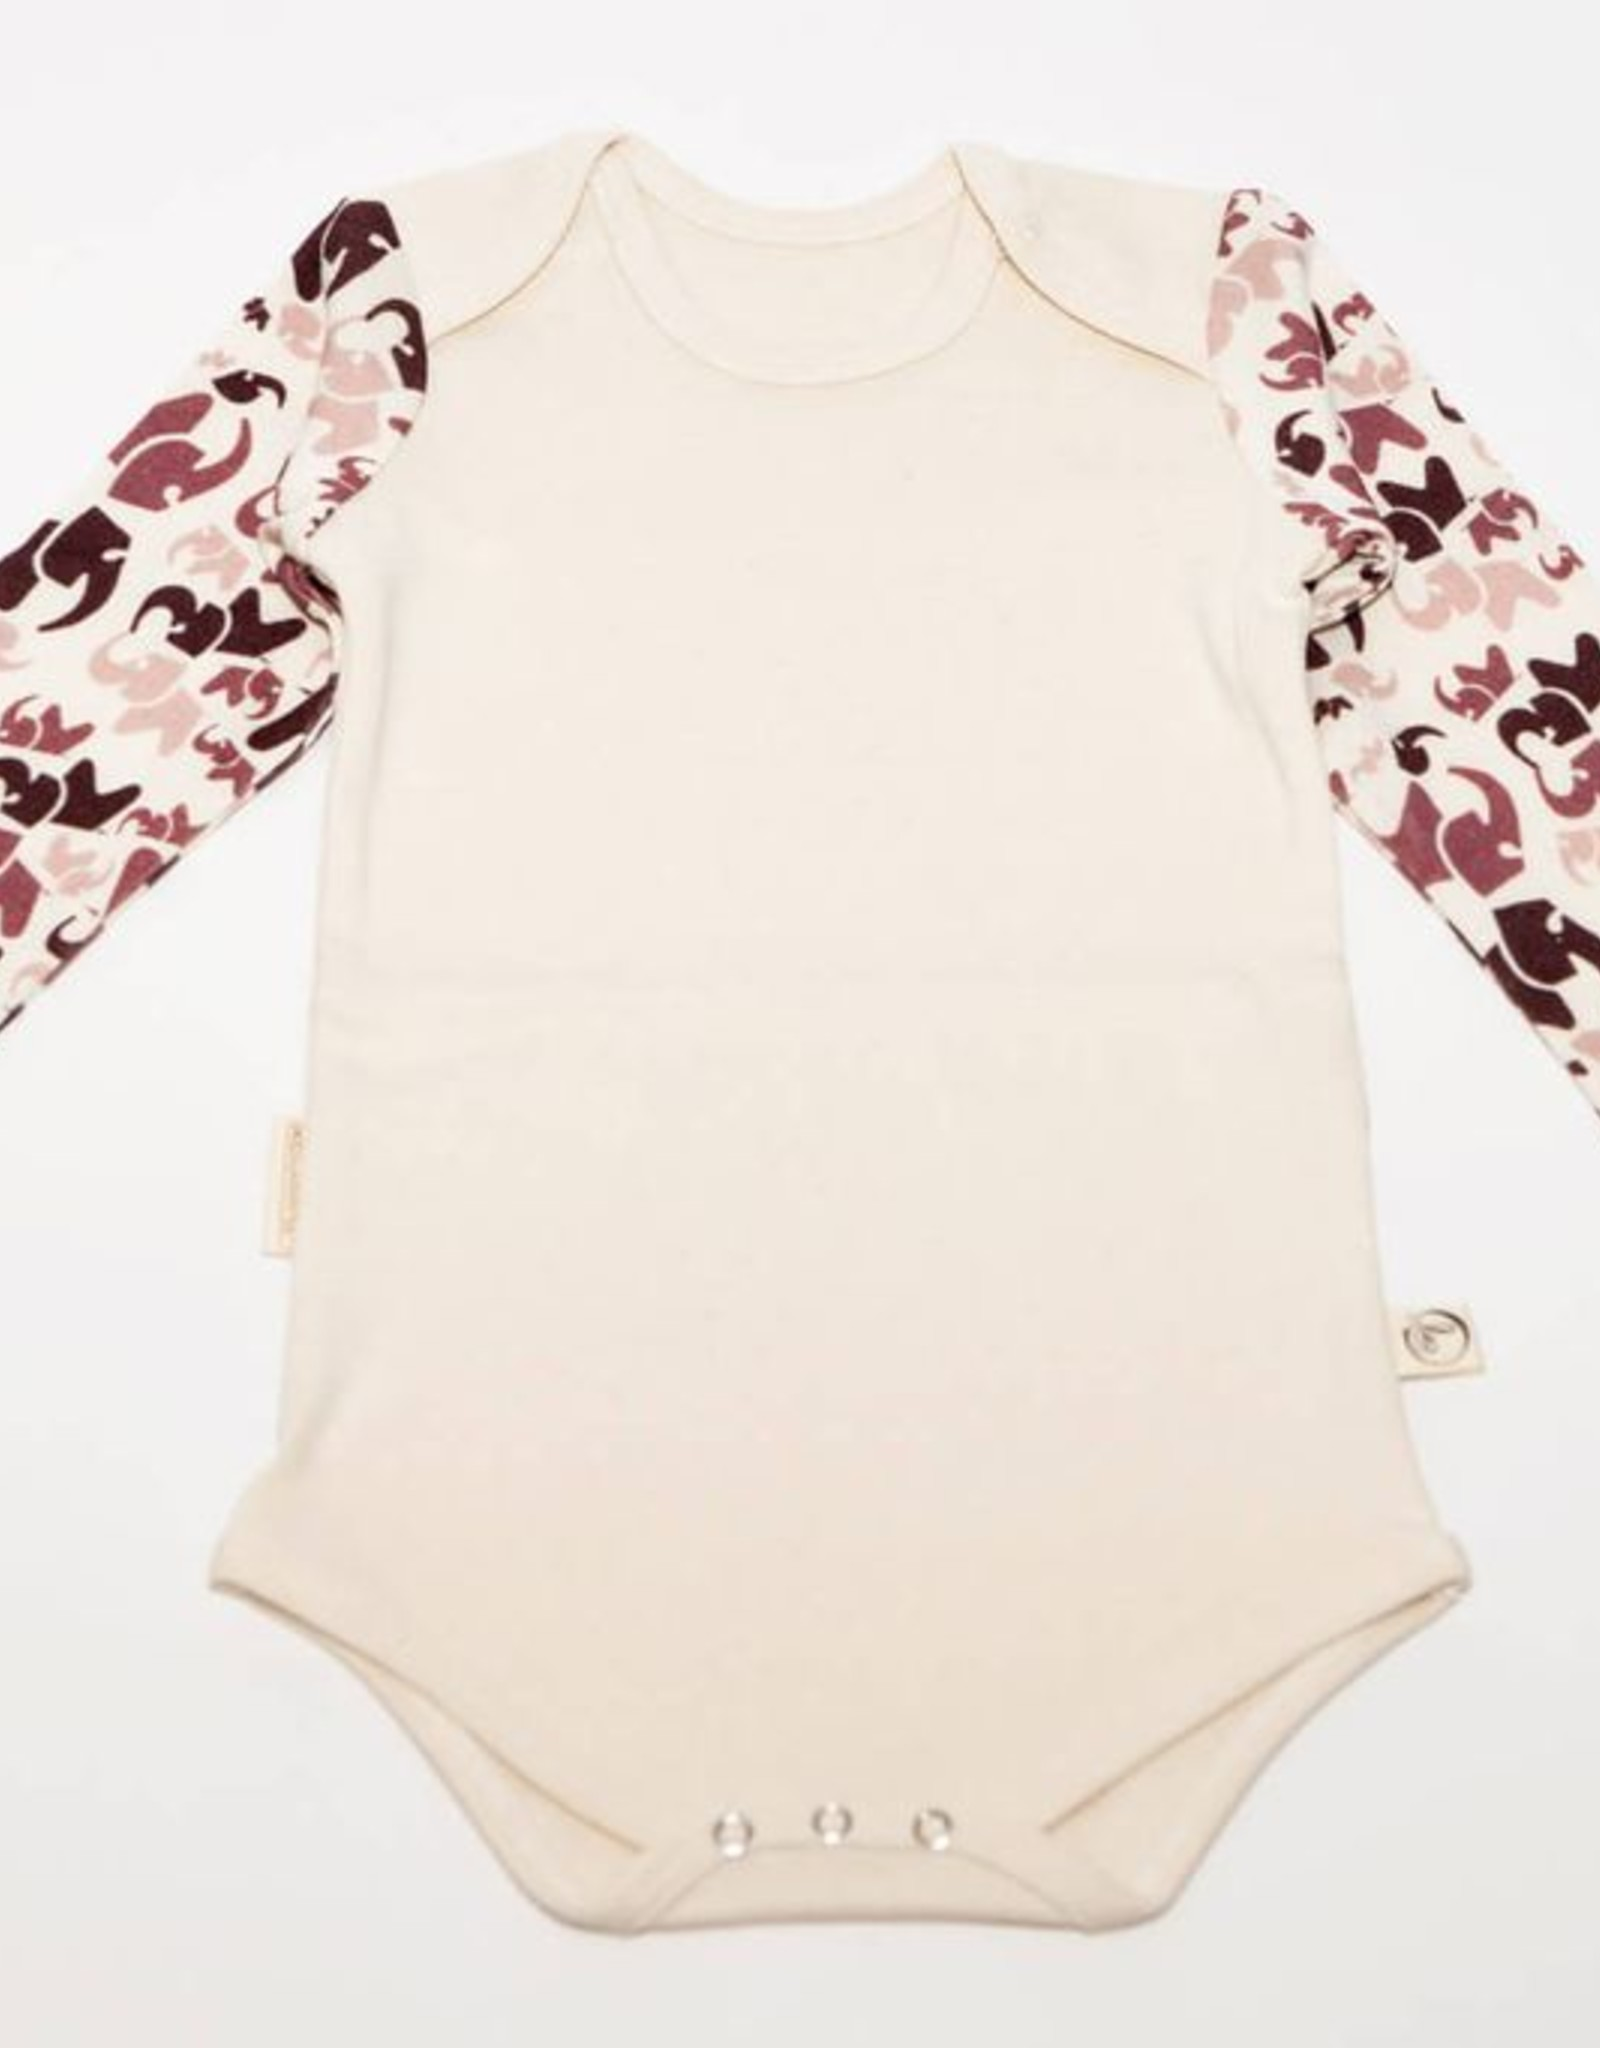 Long sleeve baby body